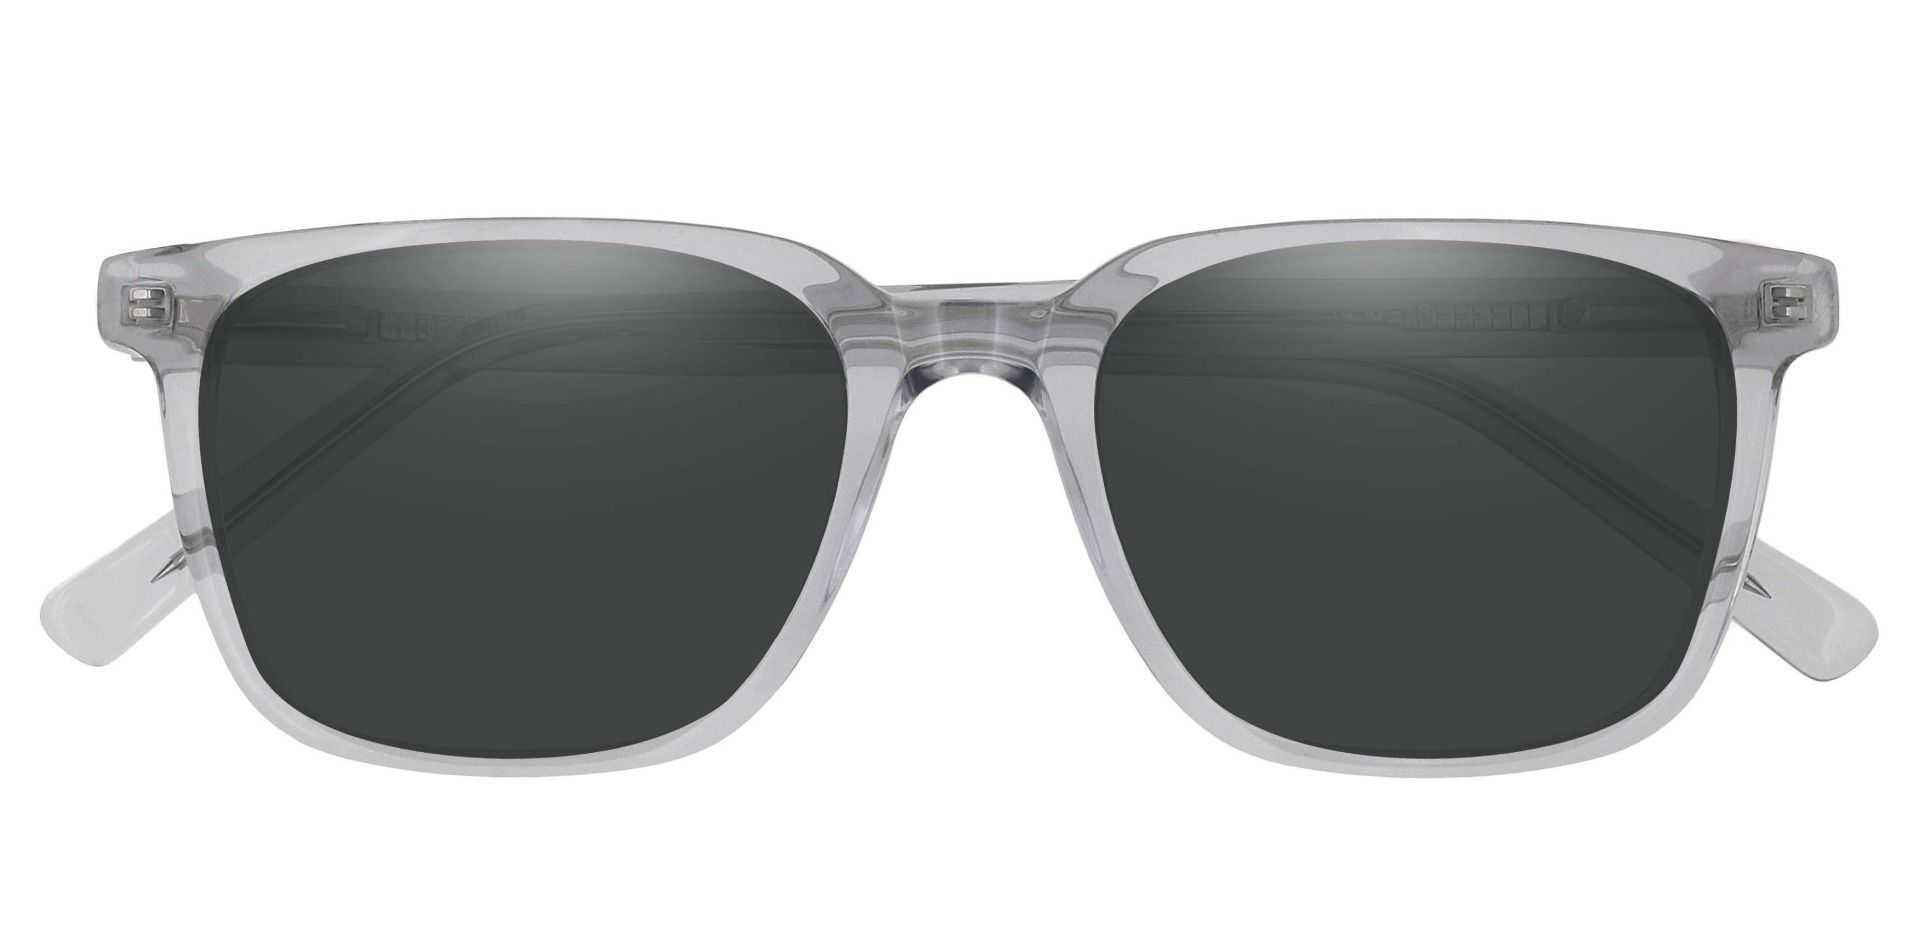 Alex Square Prescription Sunglasses - Gray Frame With Gray Lenses